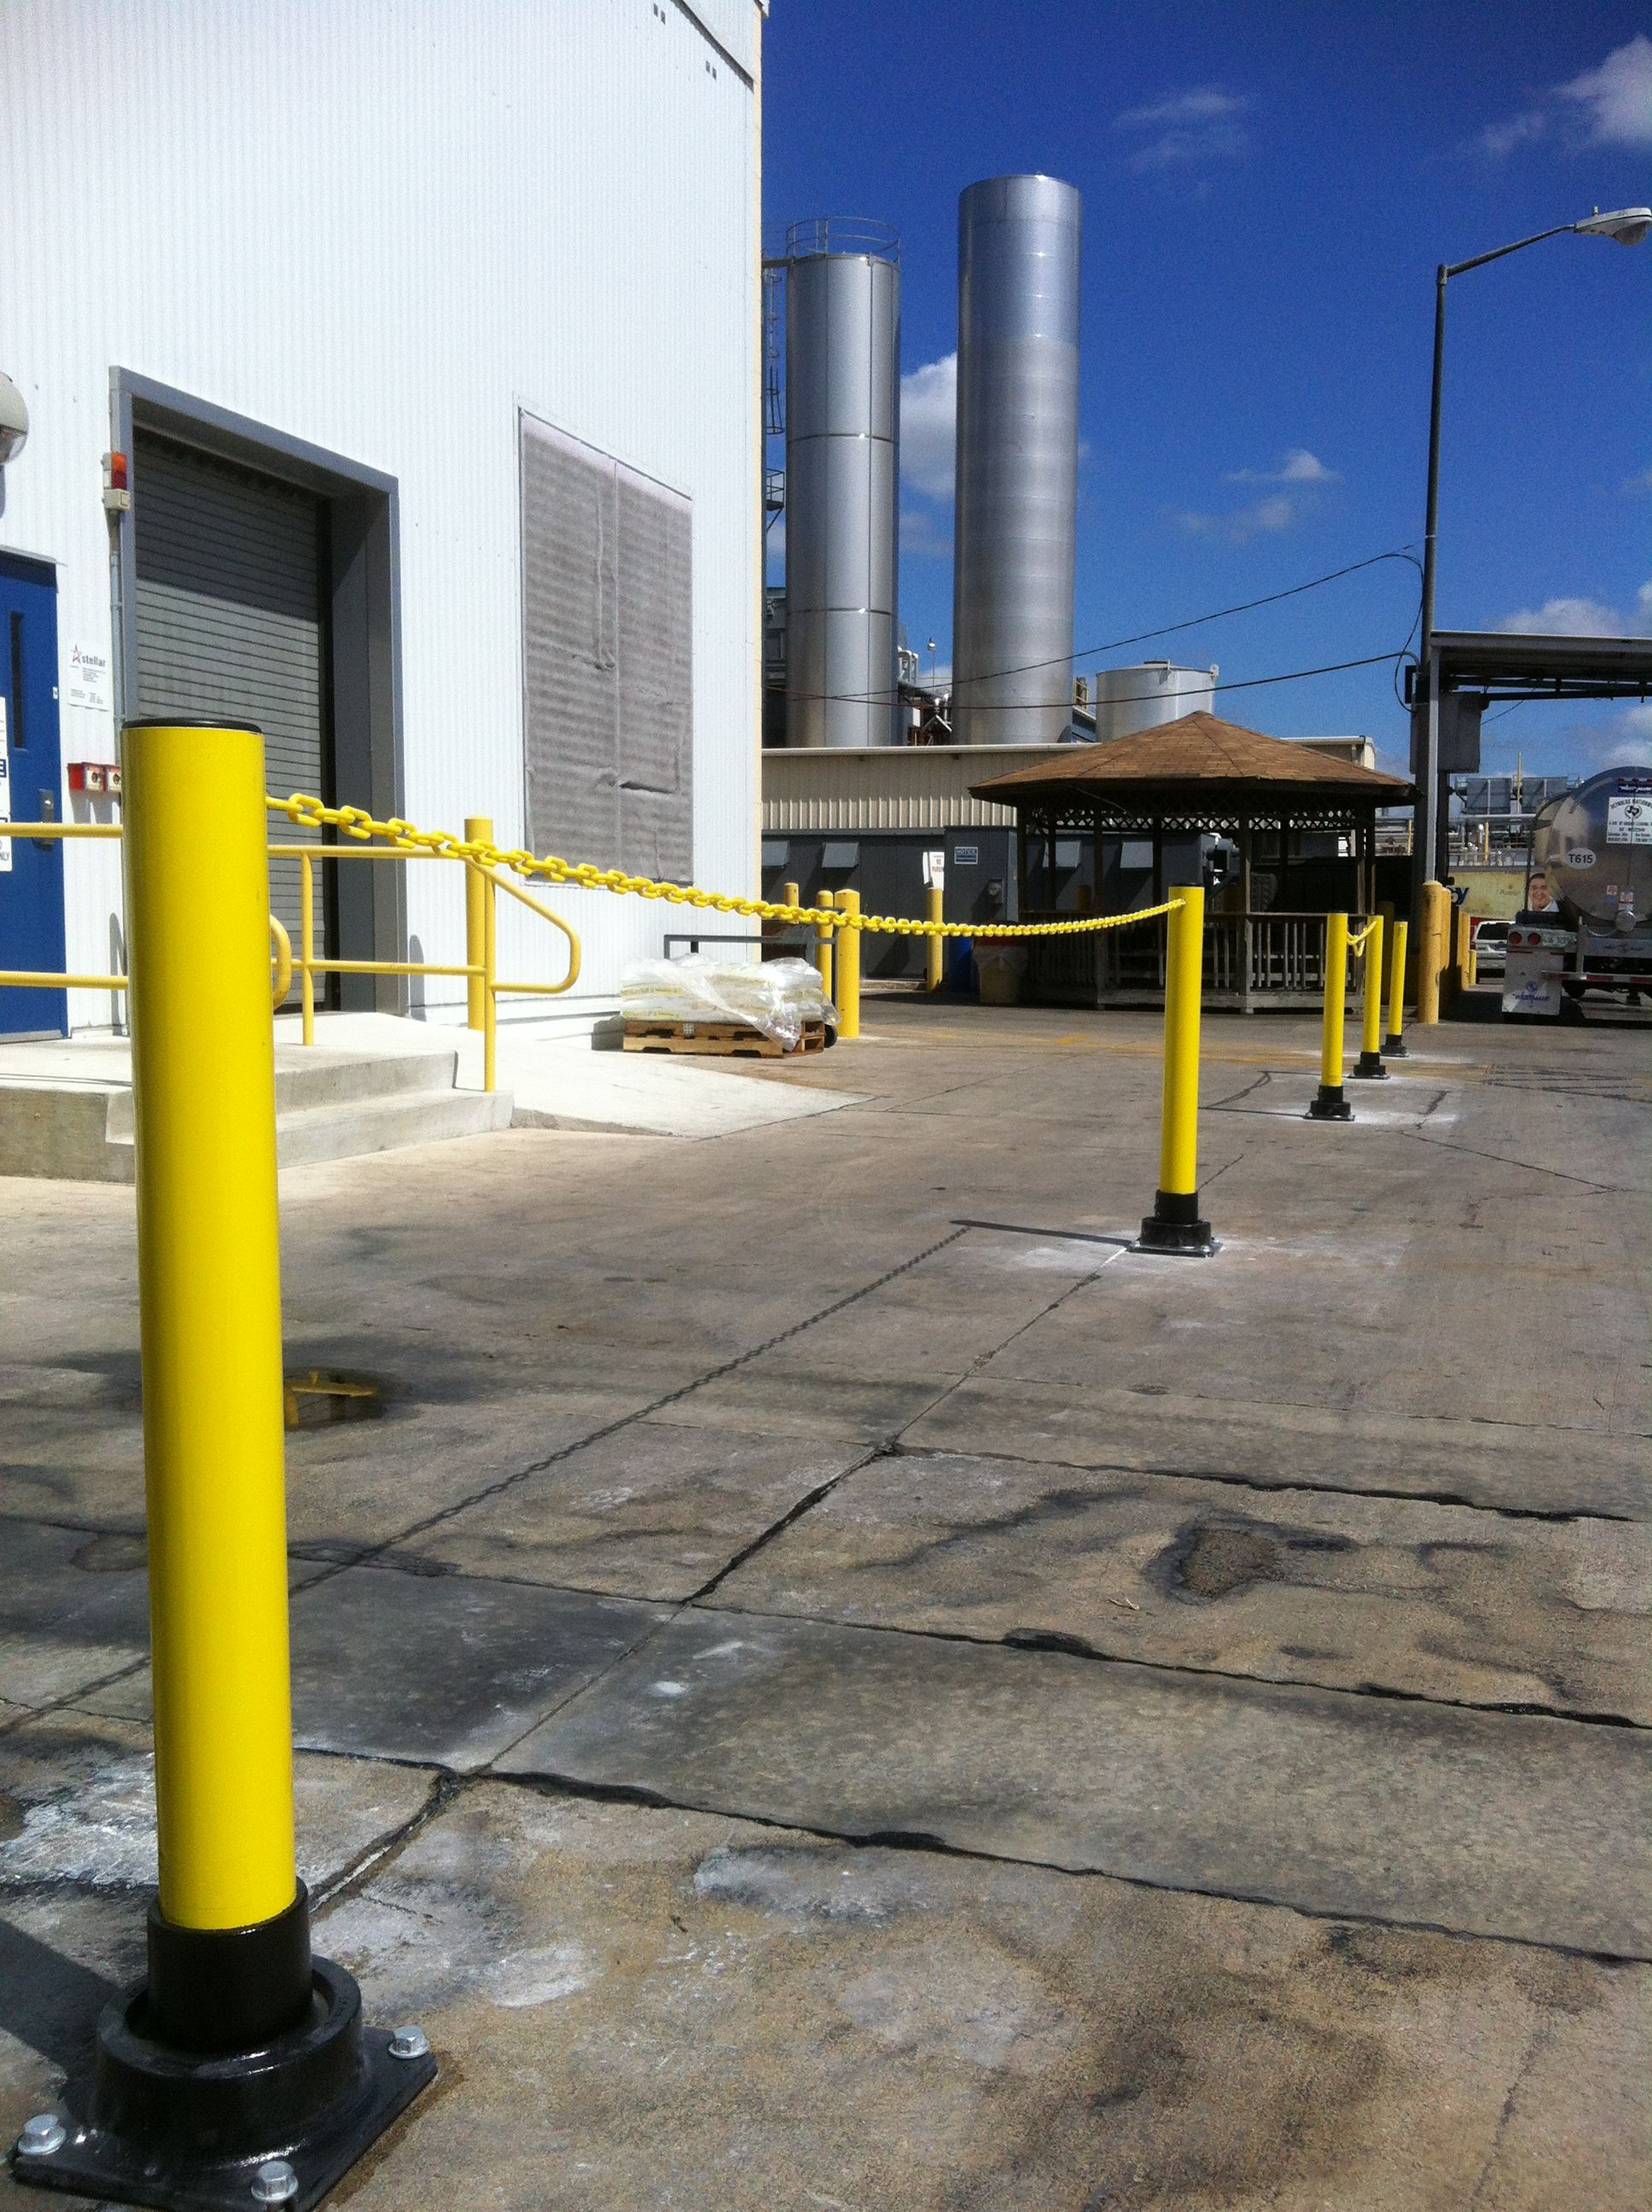 heb warehouse in san antonio tx became a recent fan of slowstop bollards this installation shows chains connecting the bollards together to create a  [ 1936 x 2592 Pixel ]